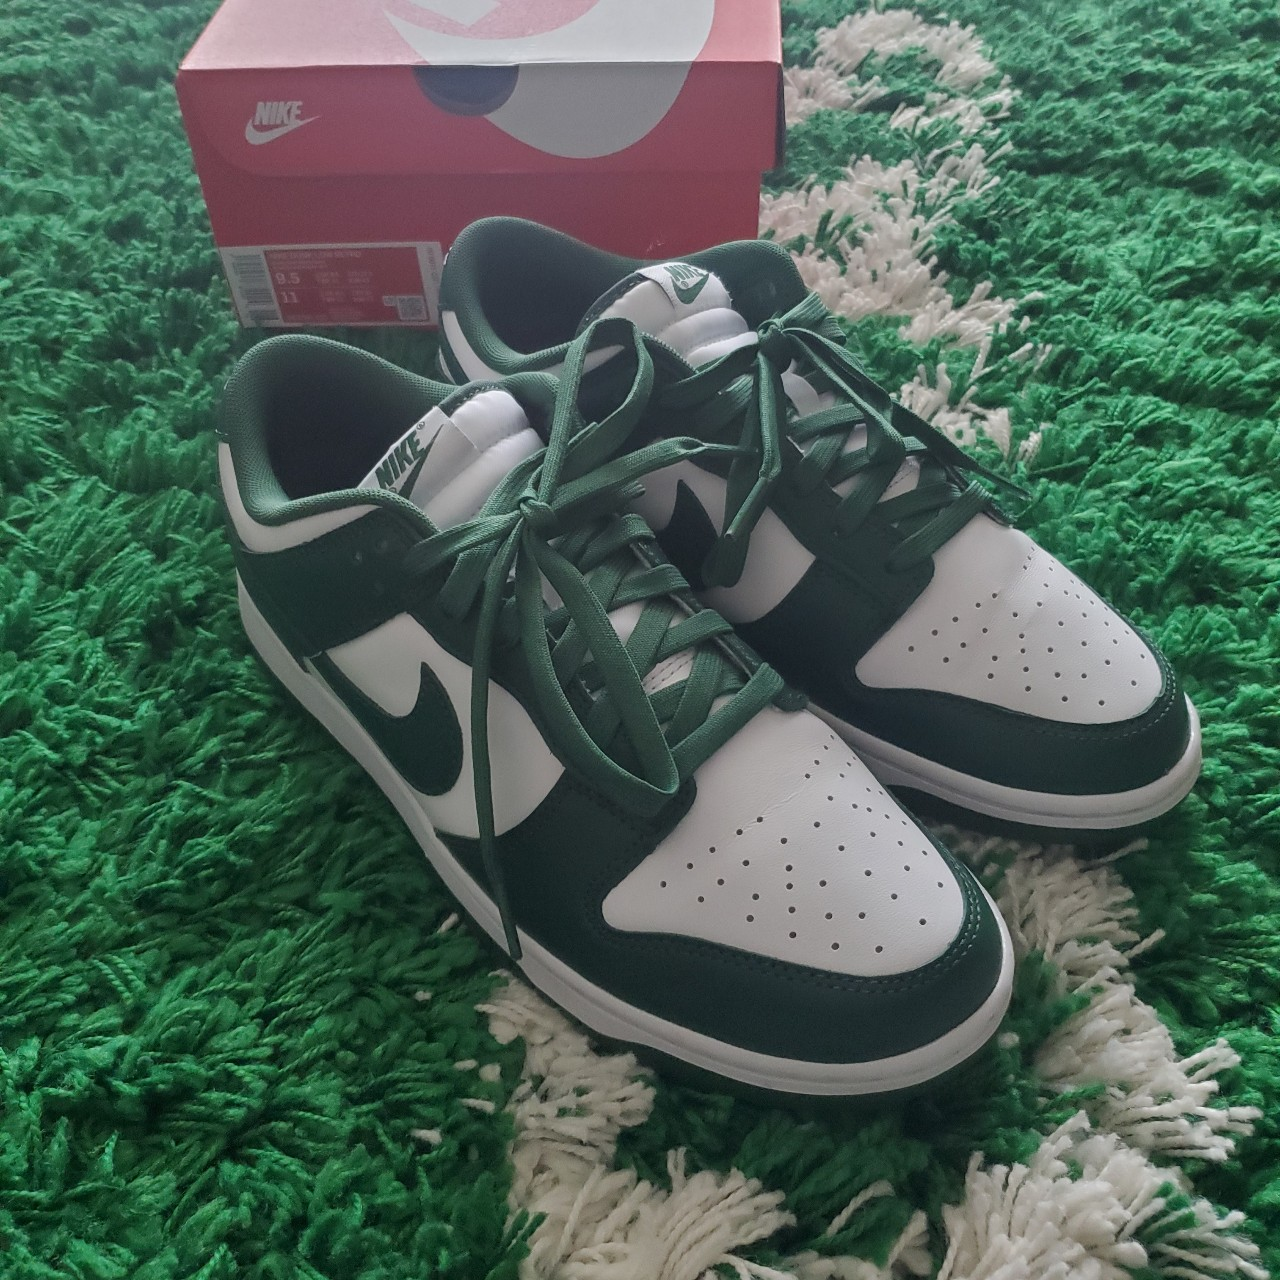 Product Image 1 - Size 9.5 Nike Dunk Low